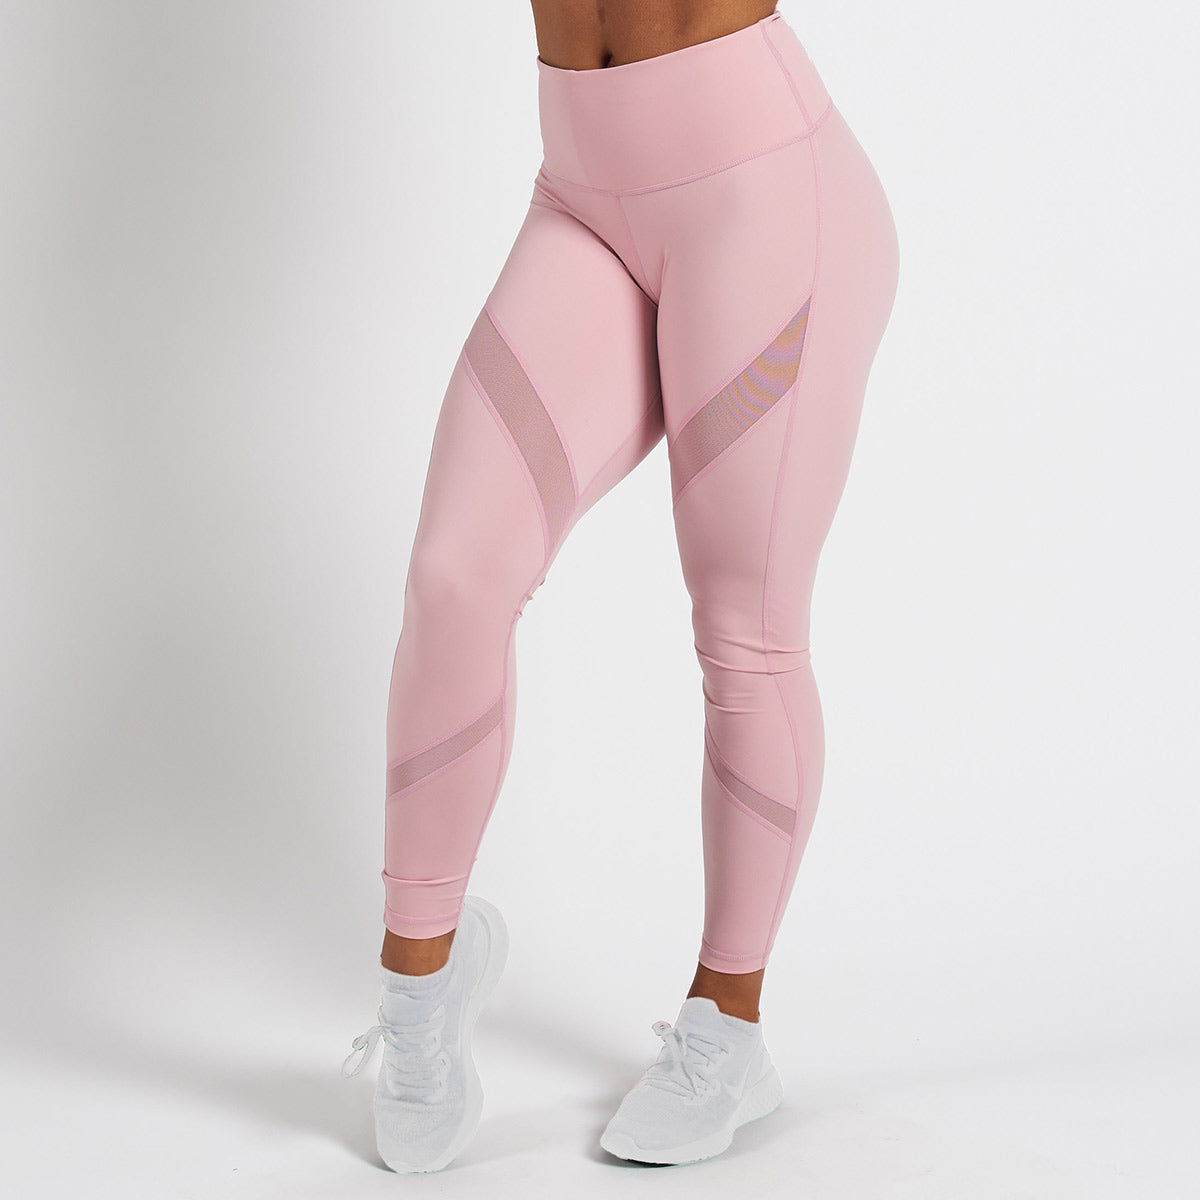 Vanquish Radiate Women's Pink Mesh Leggings